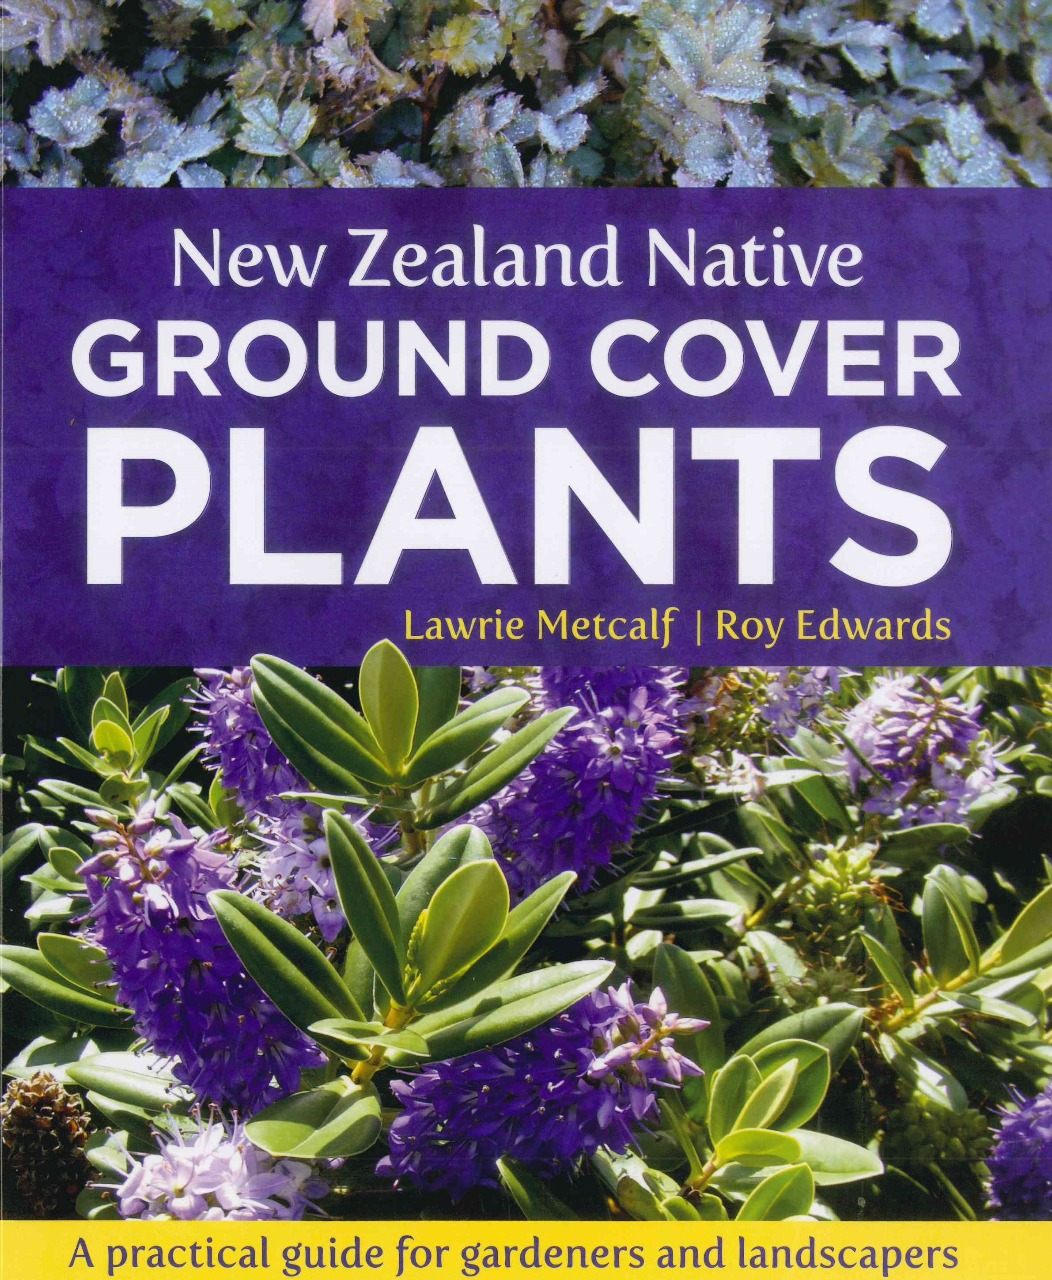 Book Cover Design Nz : New zealand native ground cover plants isbn